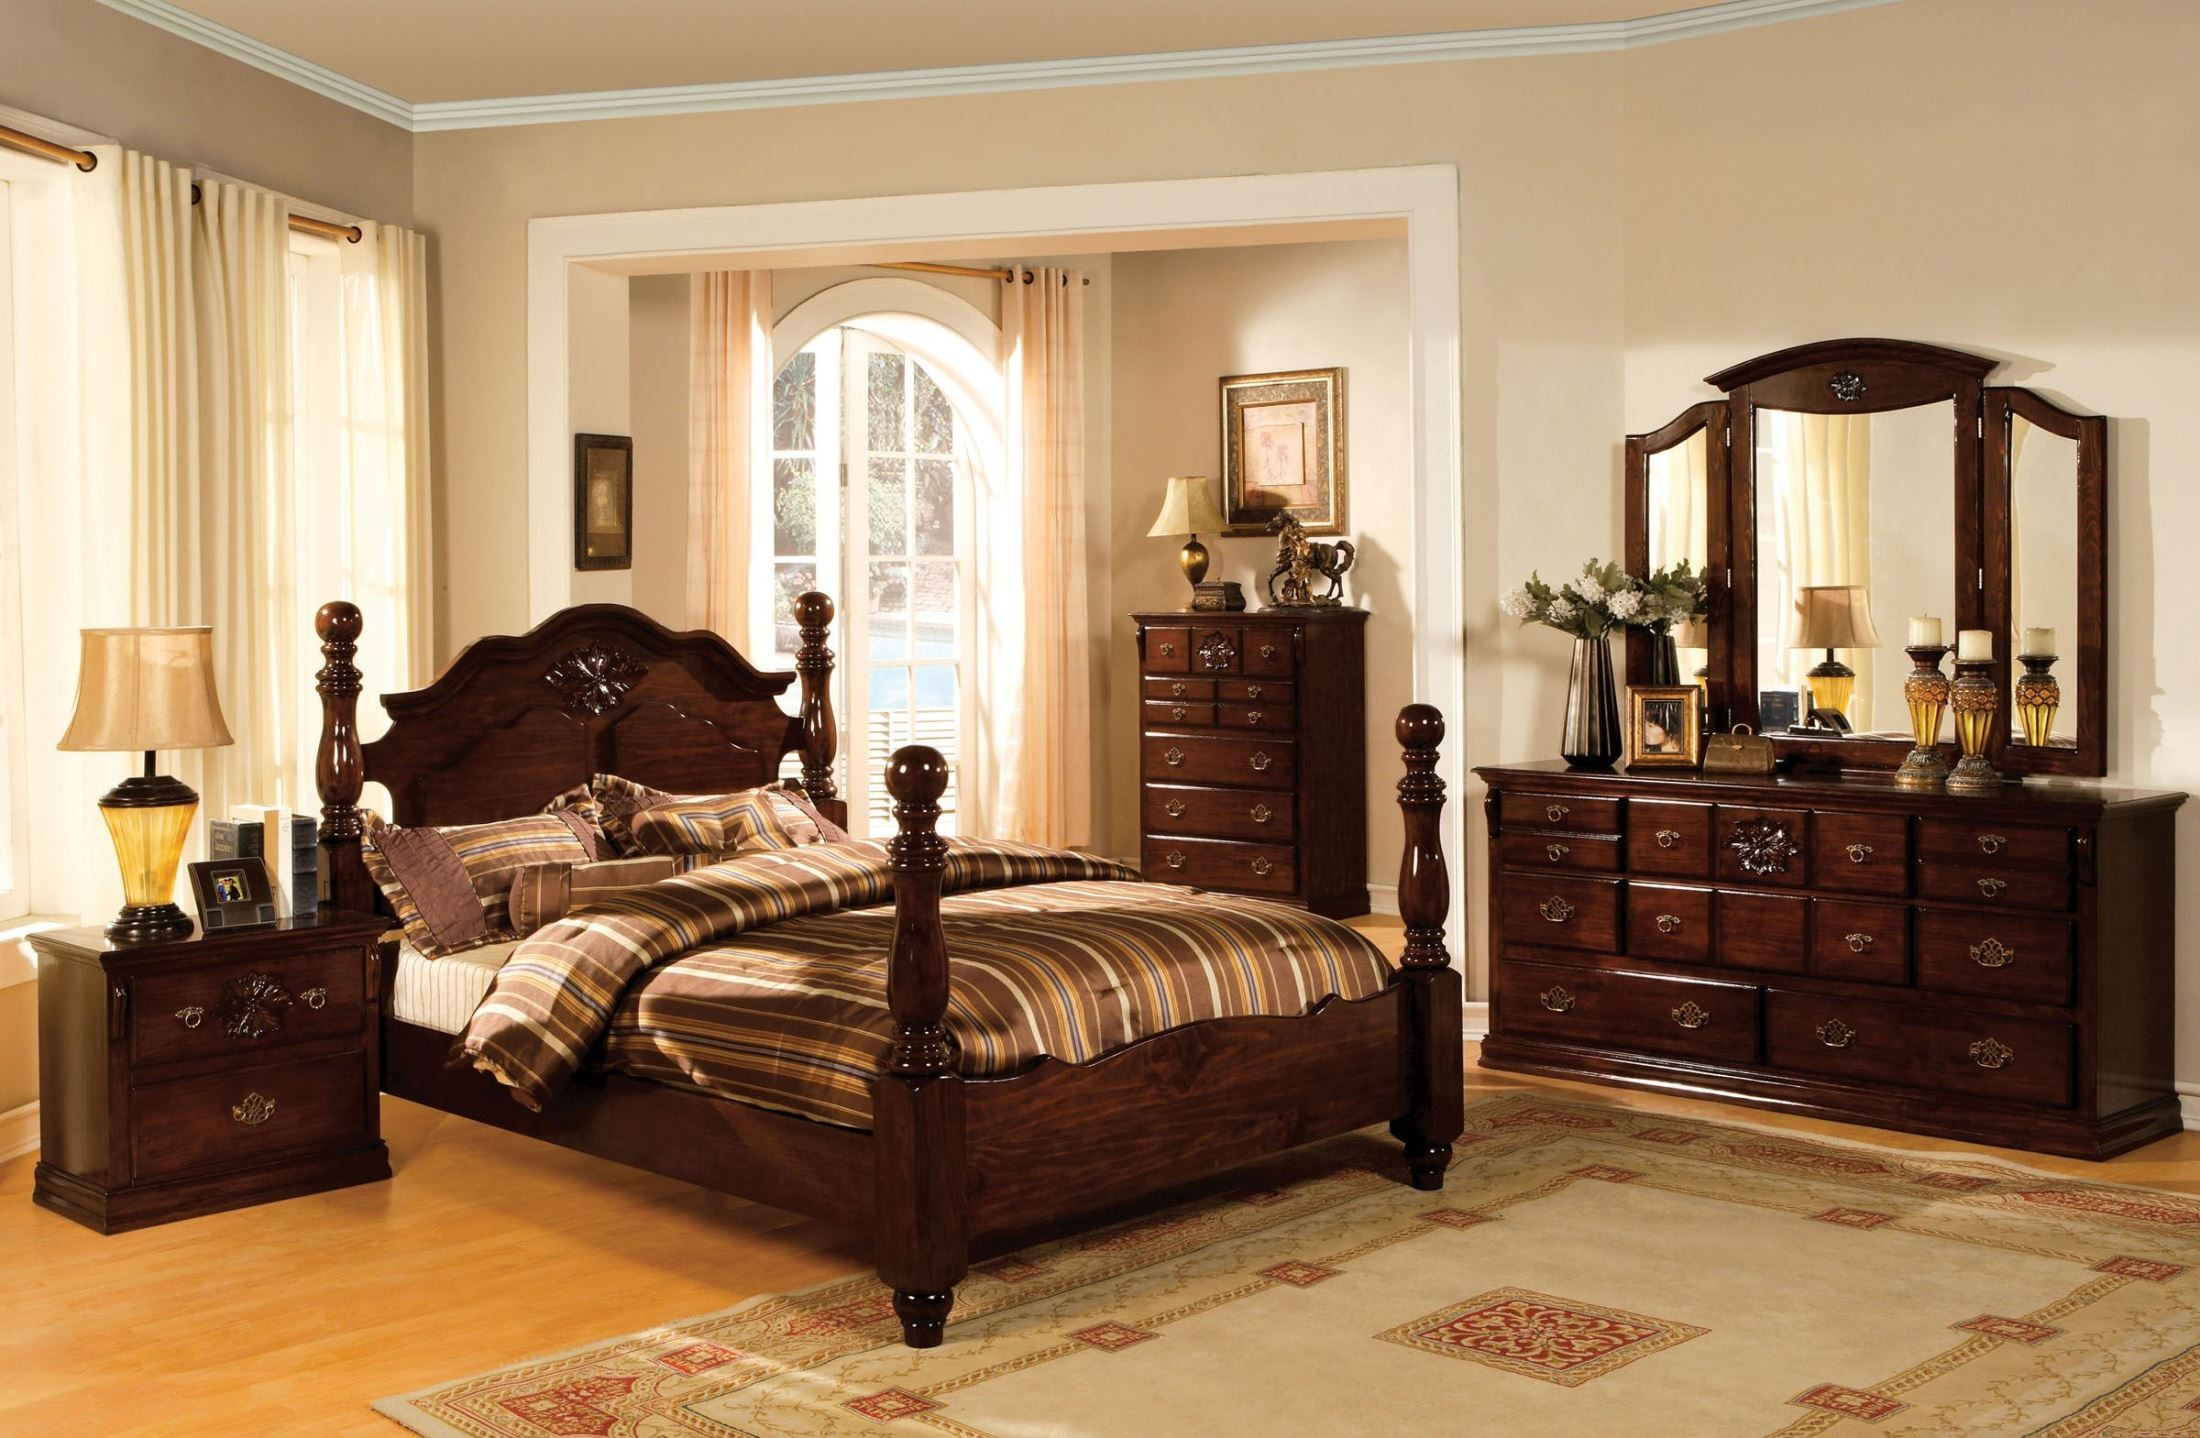 Tuscan ii glossy dark pine poster bedroom set from for M bedroom furniture